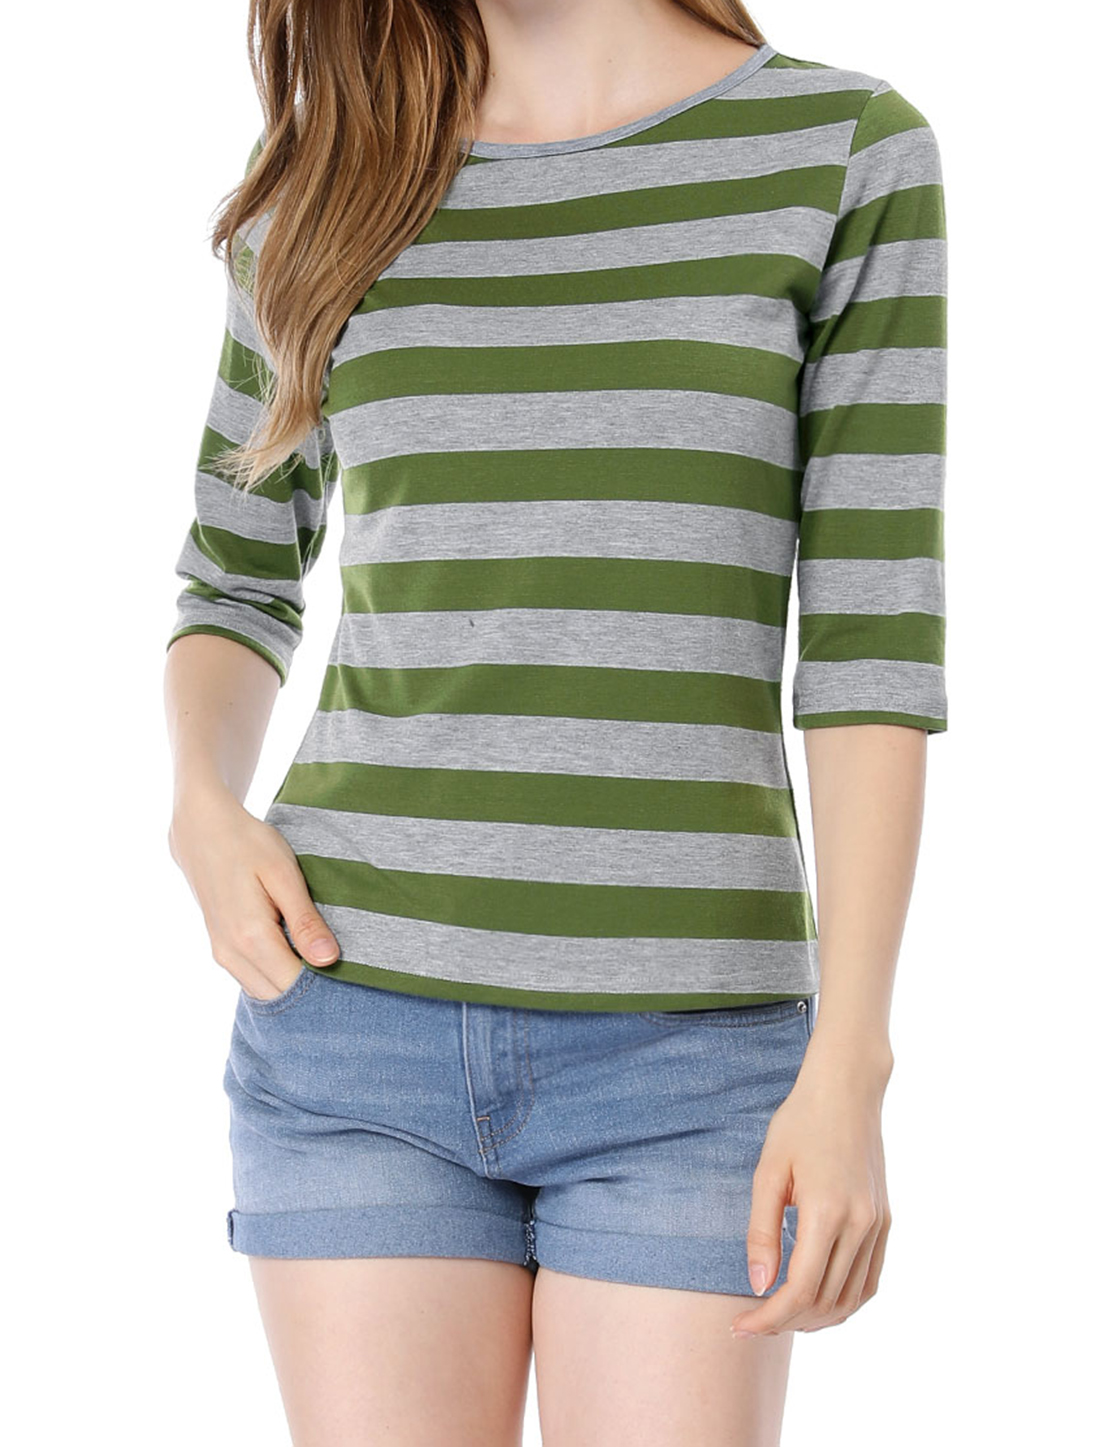 Women 1/2 Sleeves Contrast Color Stripes T-shirt Green Gray S